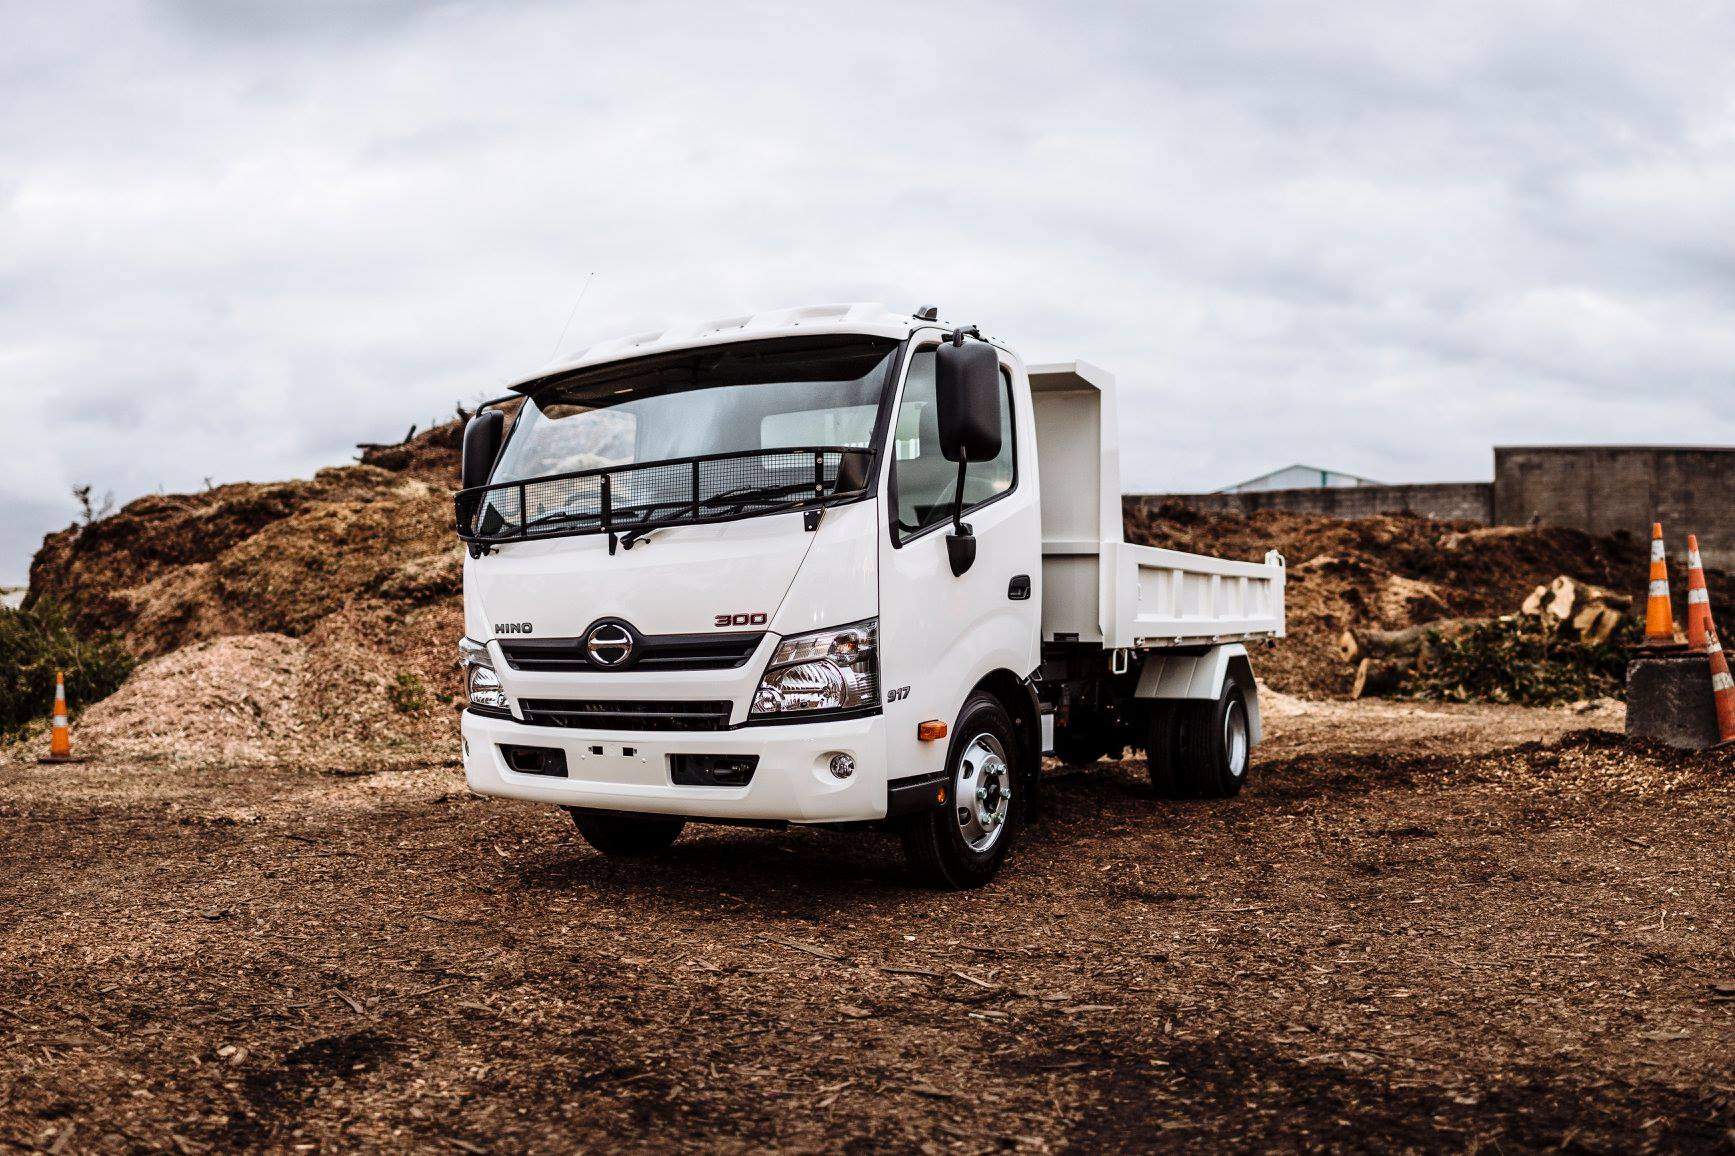 300 Series Tipper